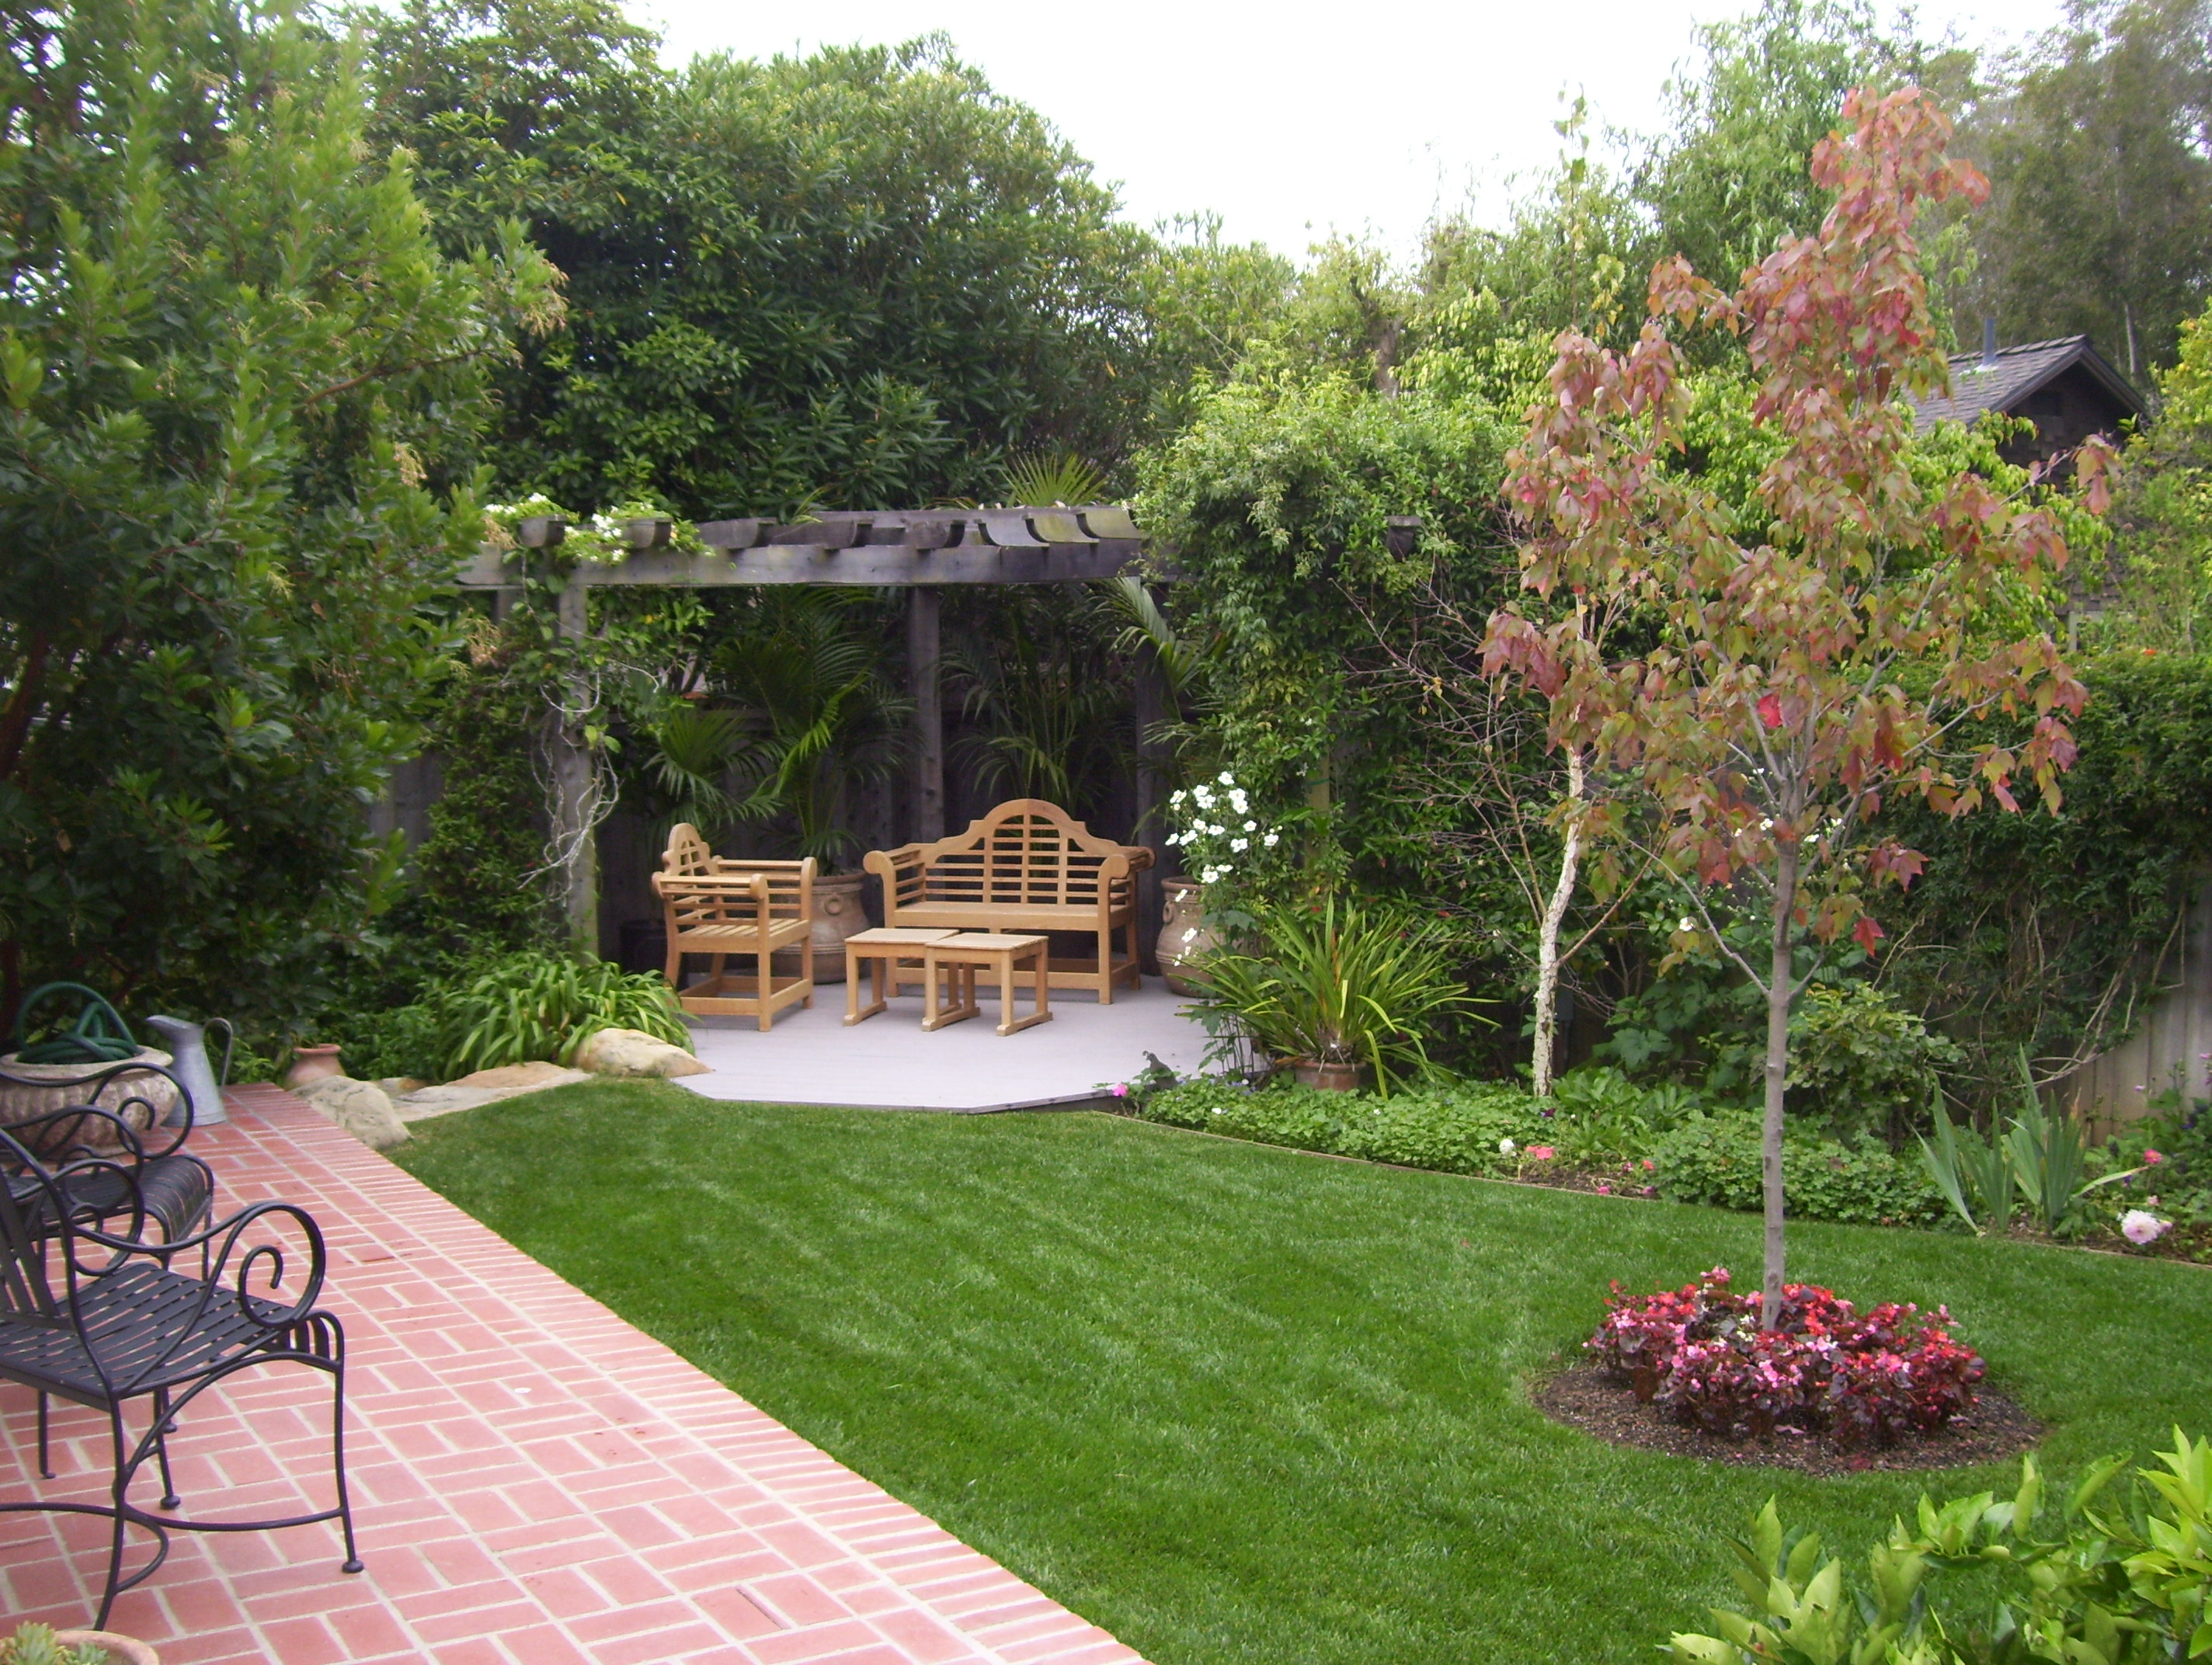 Backyard landscaping ideas santa barbara down to earth for Backyard design ideas